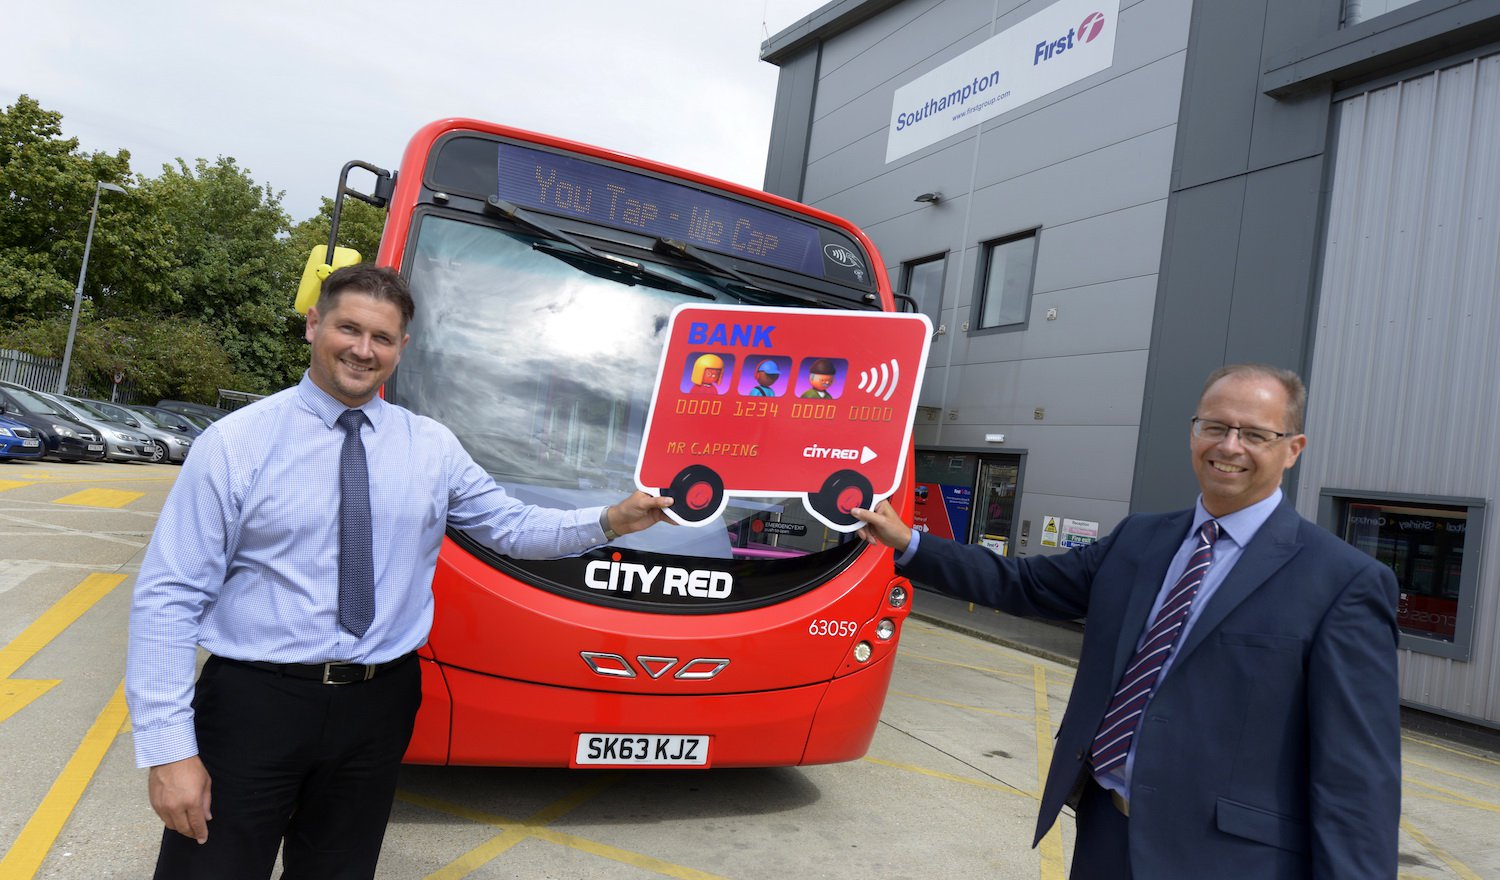 City Red Operations Manager Mark Lovell (L) and Managing Director Marc Reddy (R) mark the launch of Tap & Cap in Southampton